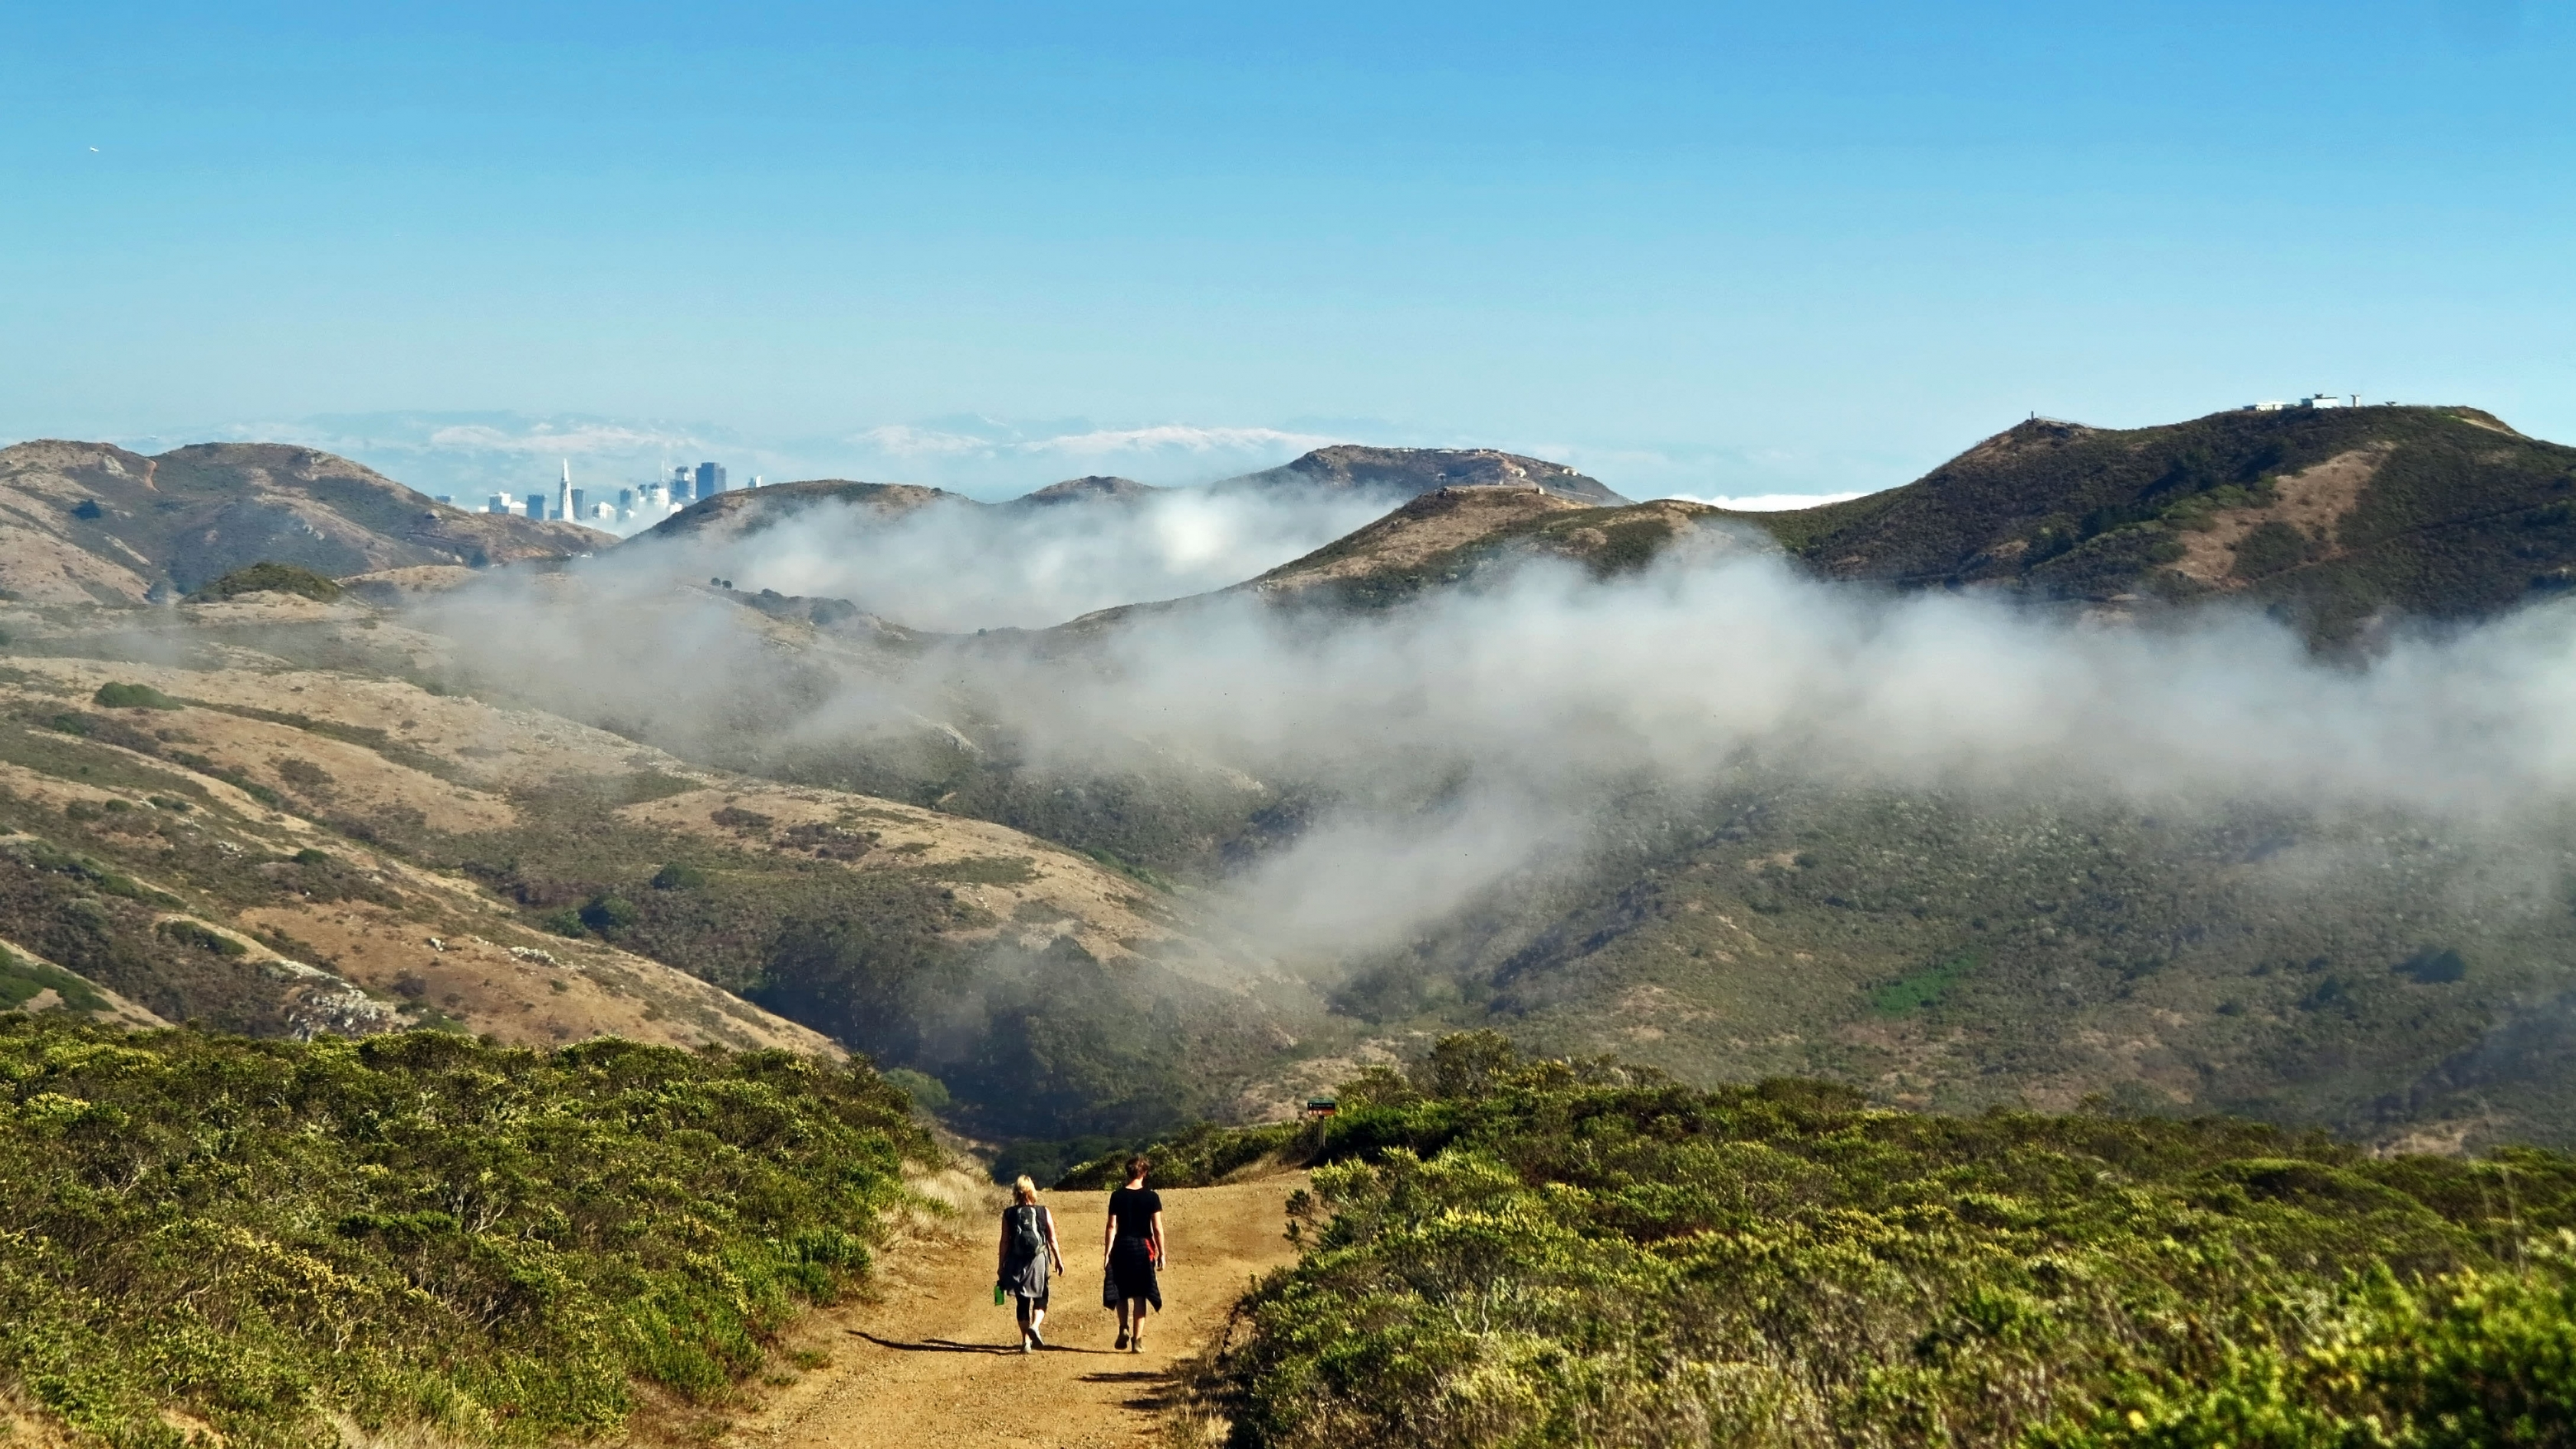 Hikers in the Marin Headlands in Golden Gate National Recreation Area.